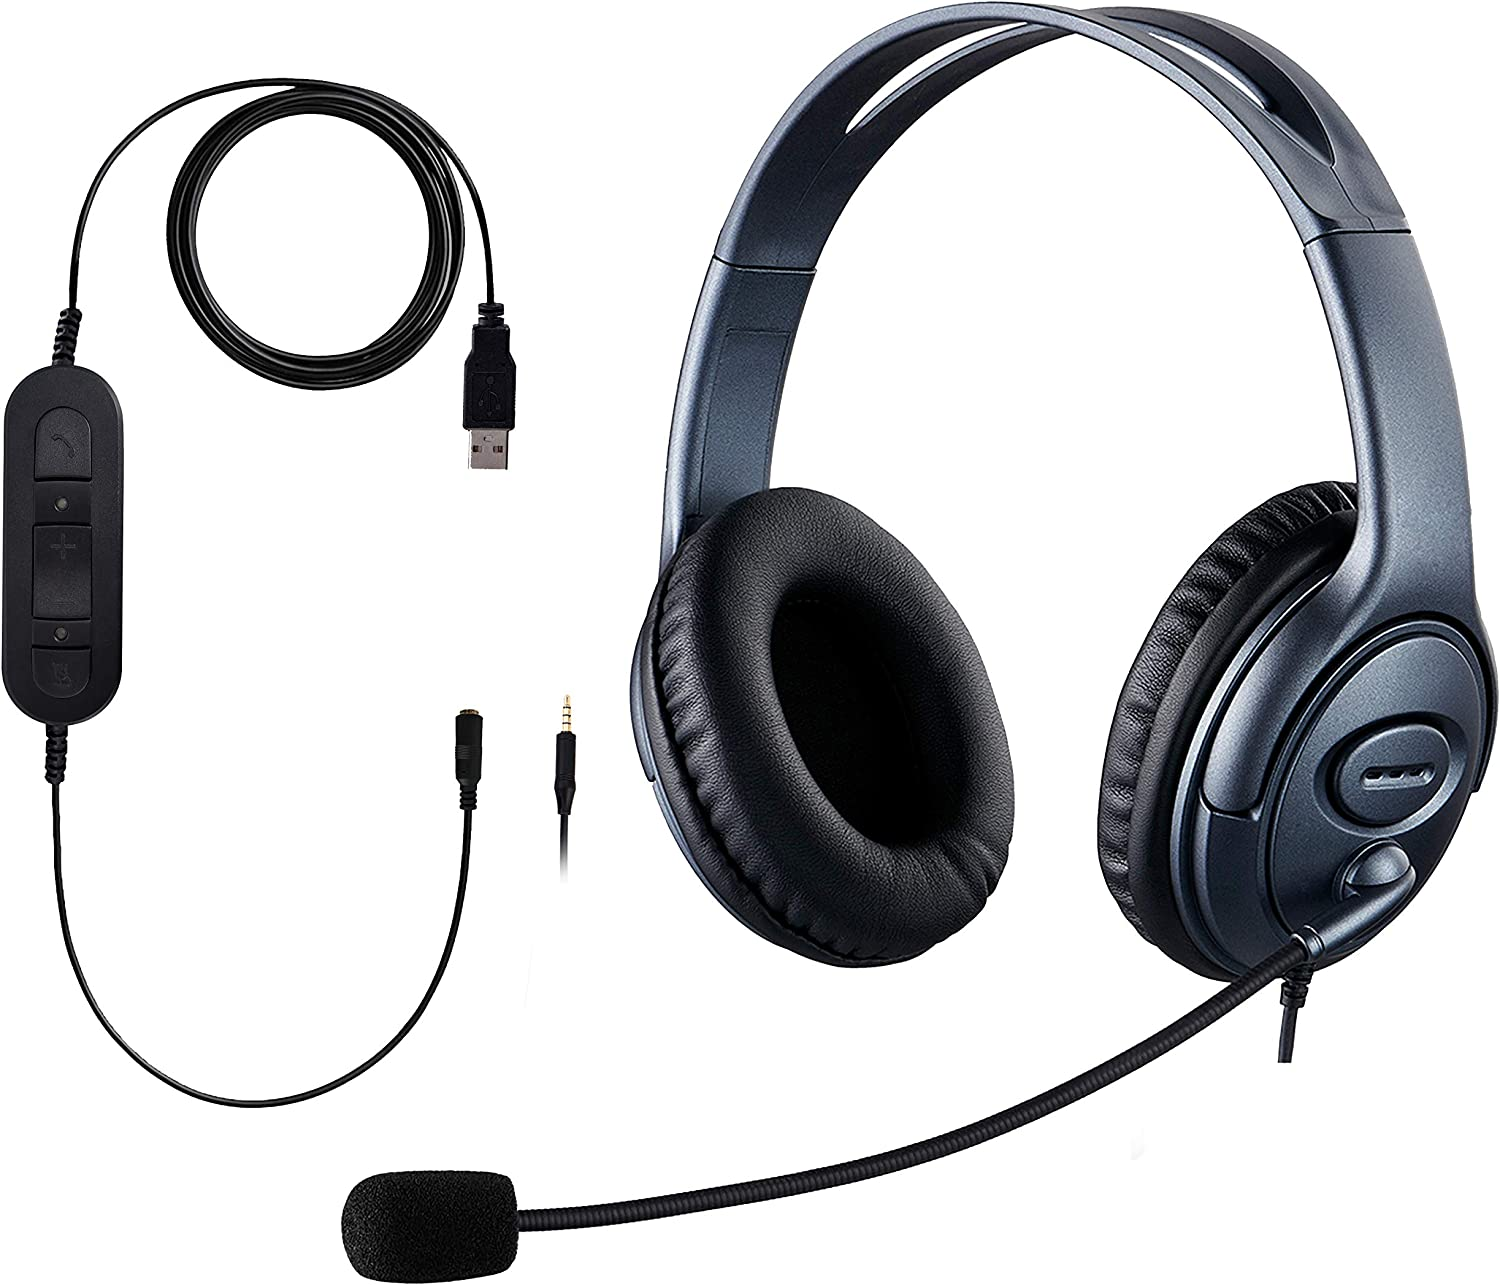 A surprise price is realized USB Headset 3.5mm Computer Noise Microphone Max 45% OFF Cancel with